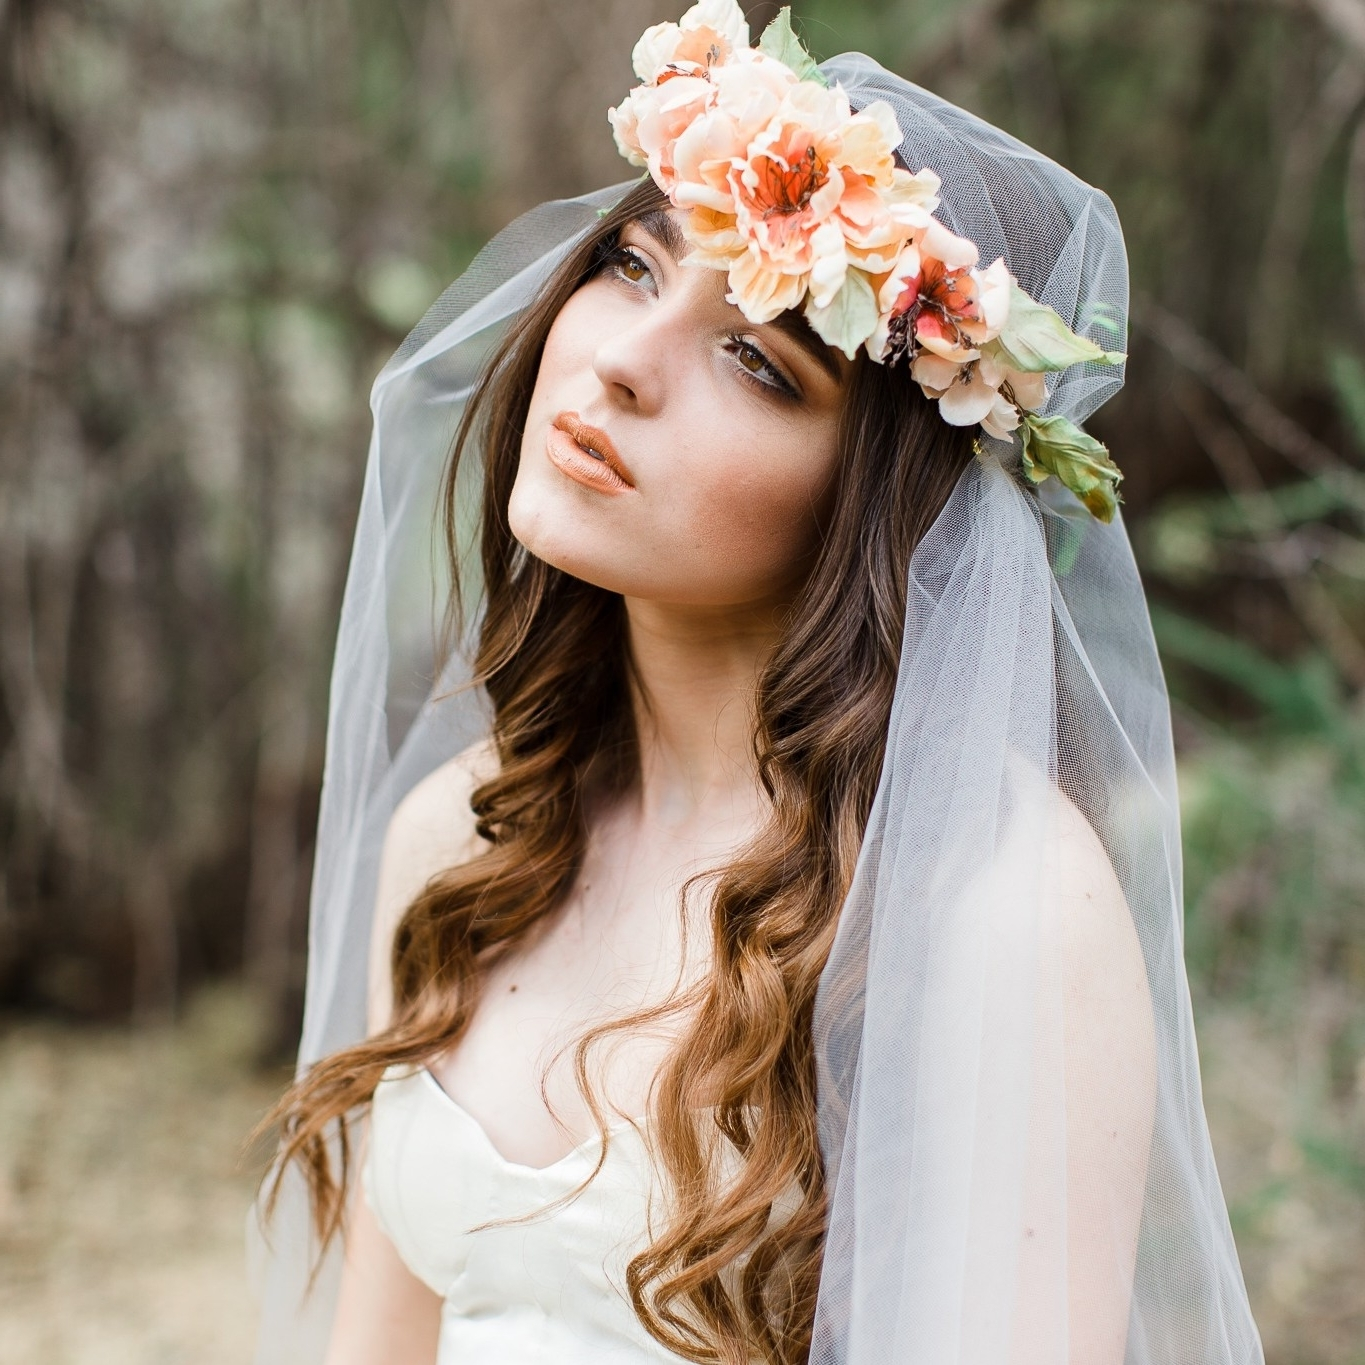 Wedding Hairstyles Ideas: Charming Light Slamon Wedding Hair Flowers Regarding Preferred Wedding Hairstyles With Headband And Veil (View 14 of 15)